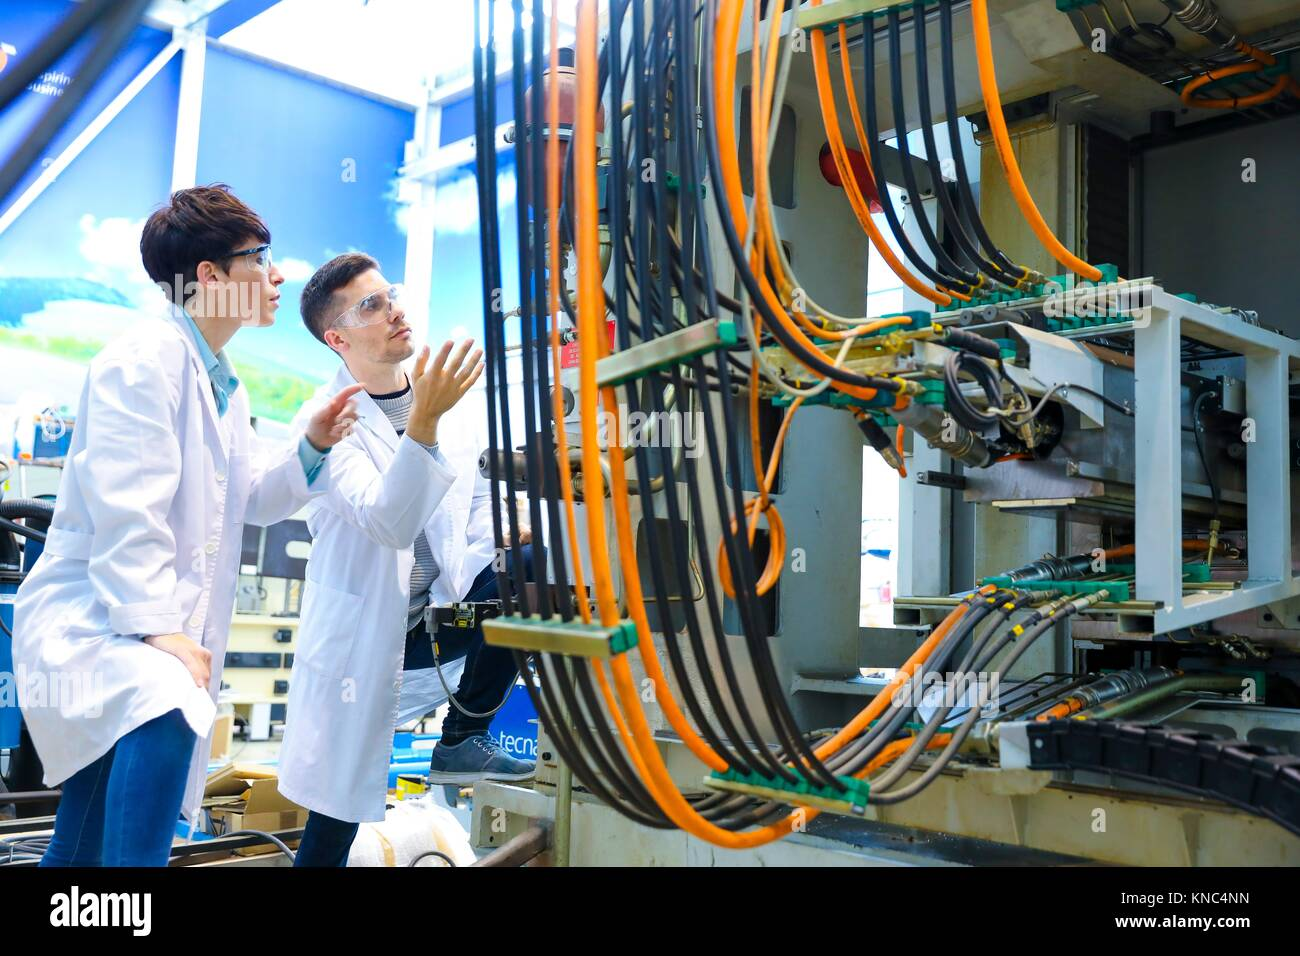 Los investigadores en el centro de mecanizado, industria, Tecnalia Research & Innovation, Technology and Research Imagen De Stock